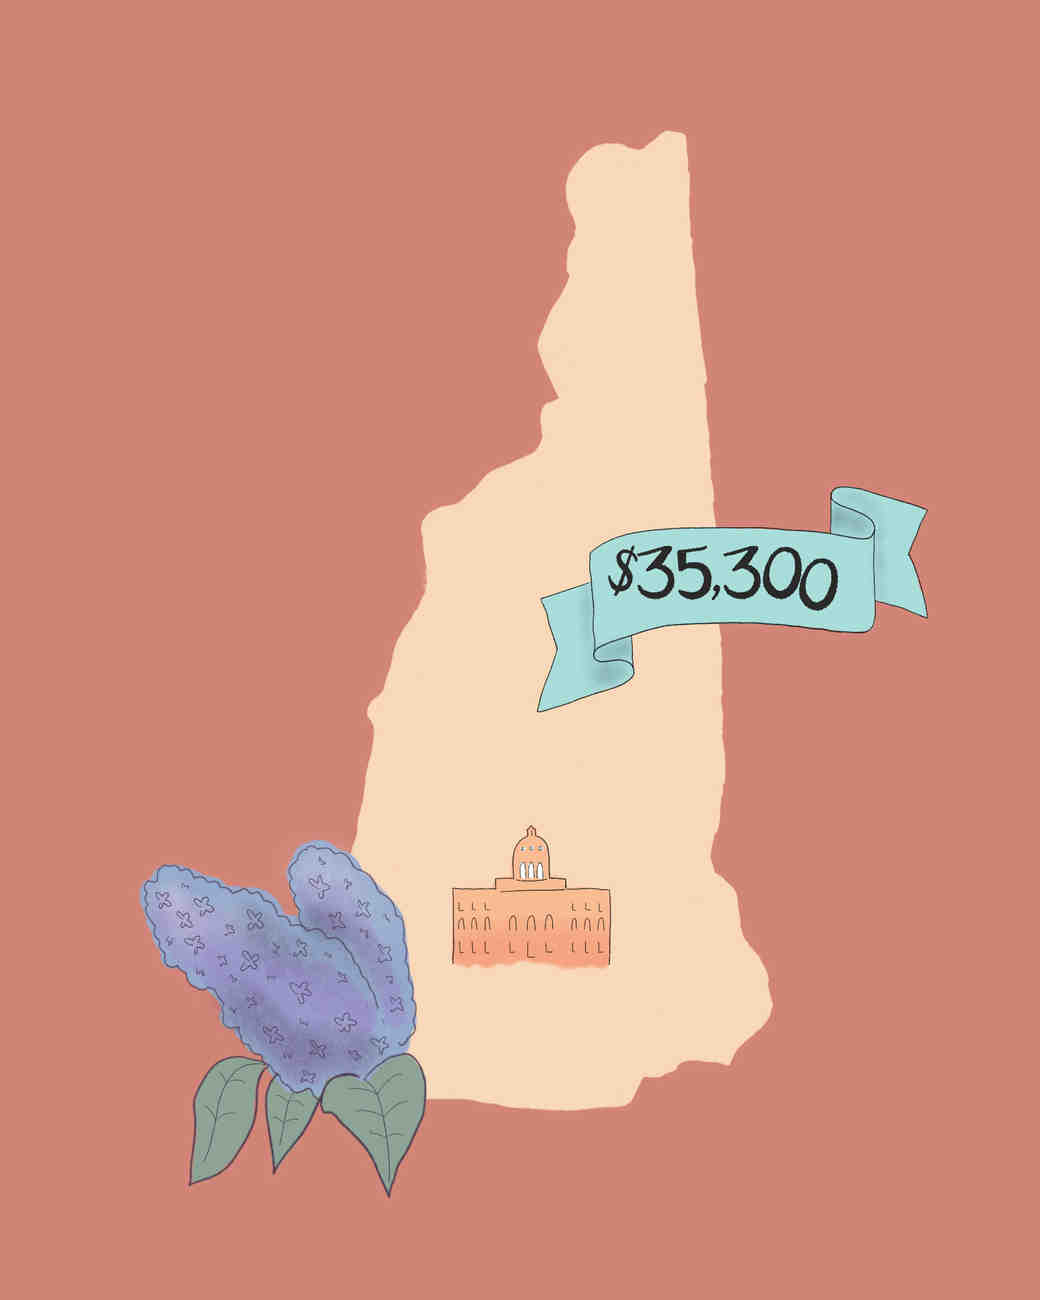 state wedding costs illustration new hampshire